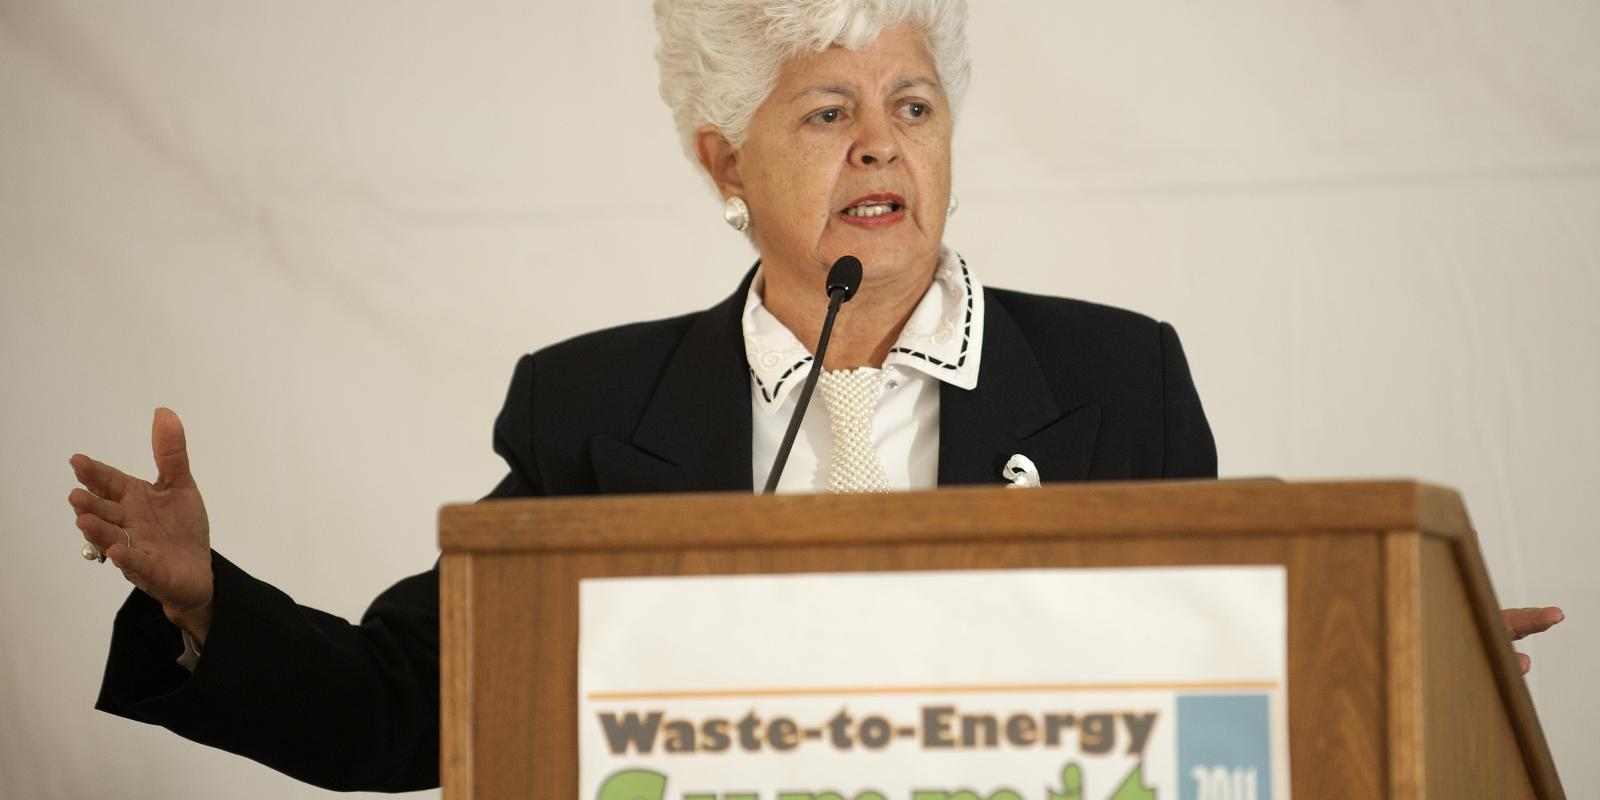 U.S. Rep. Grace Napolitano at the Waste-to-Energy Summit, October 2011